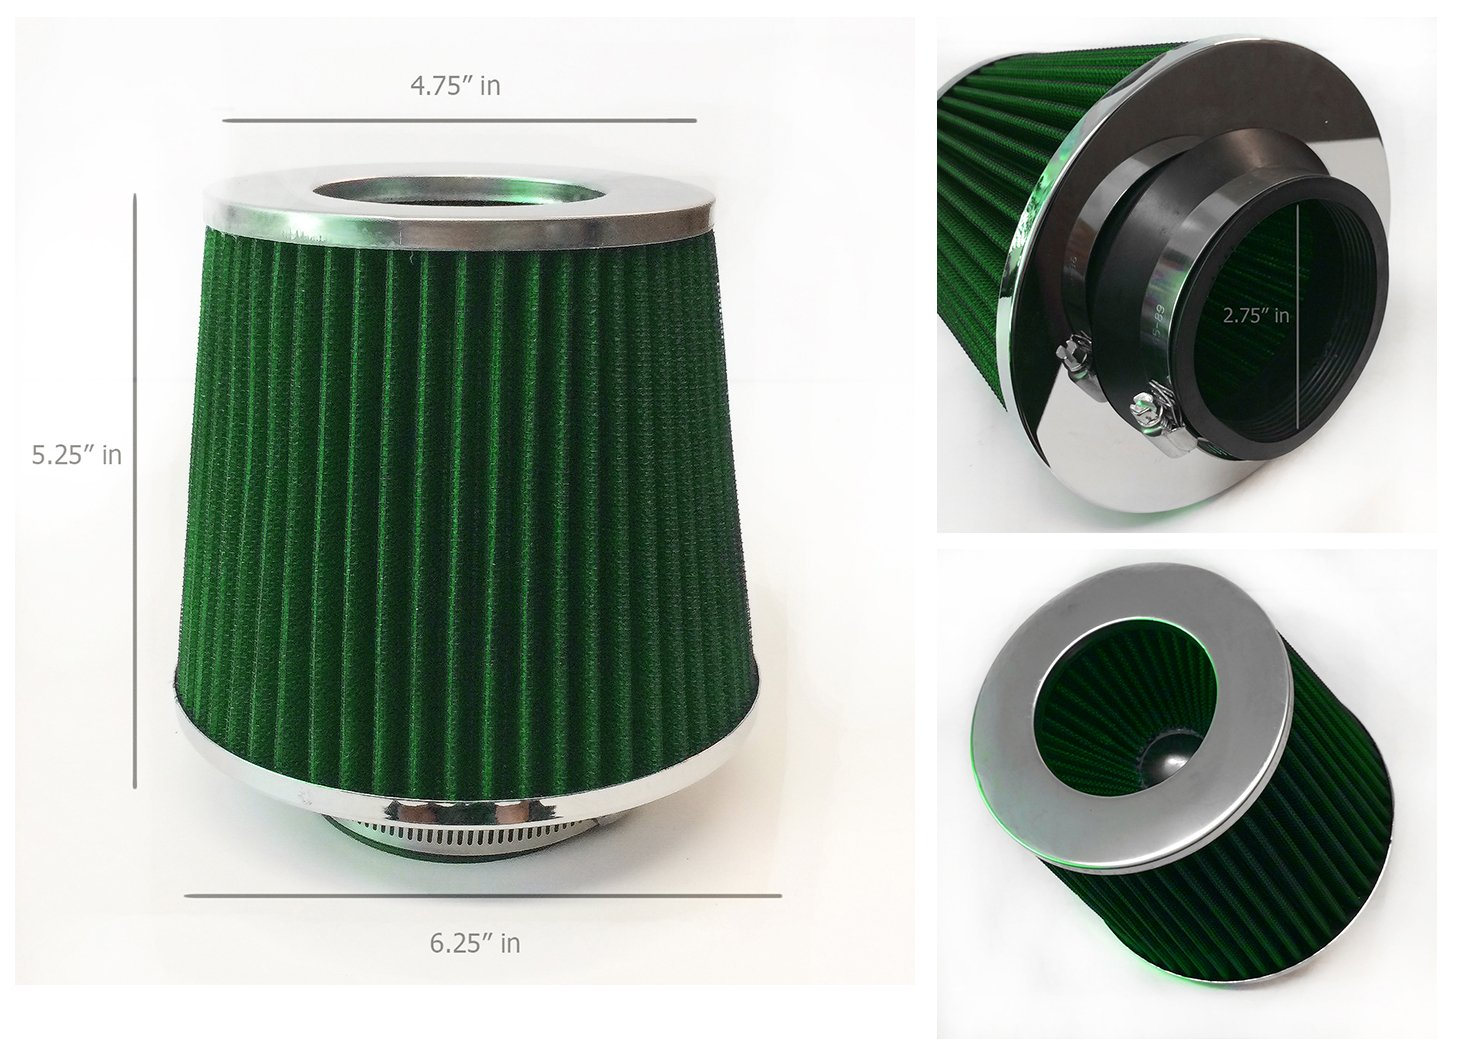 Short Ram Cold Air Intake Chrome Top Cone Air Filter Universal 70mm 2.75, Green 2.75 Inlet